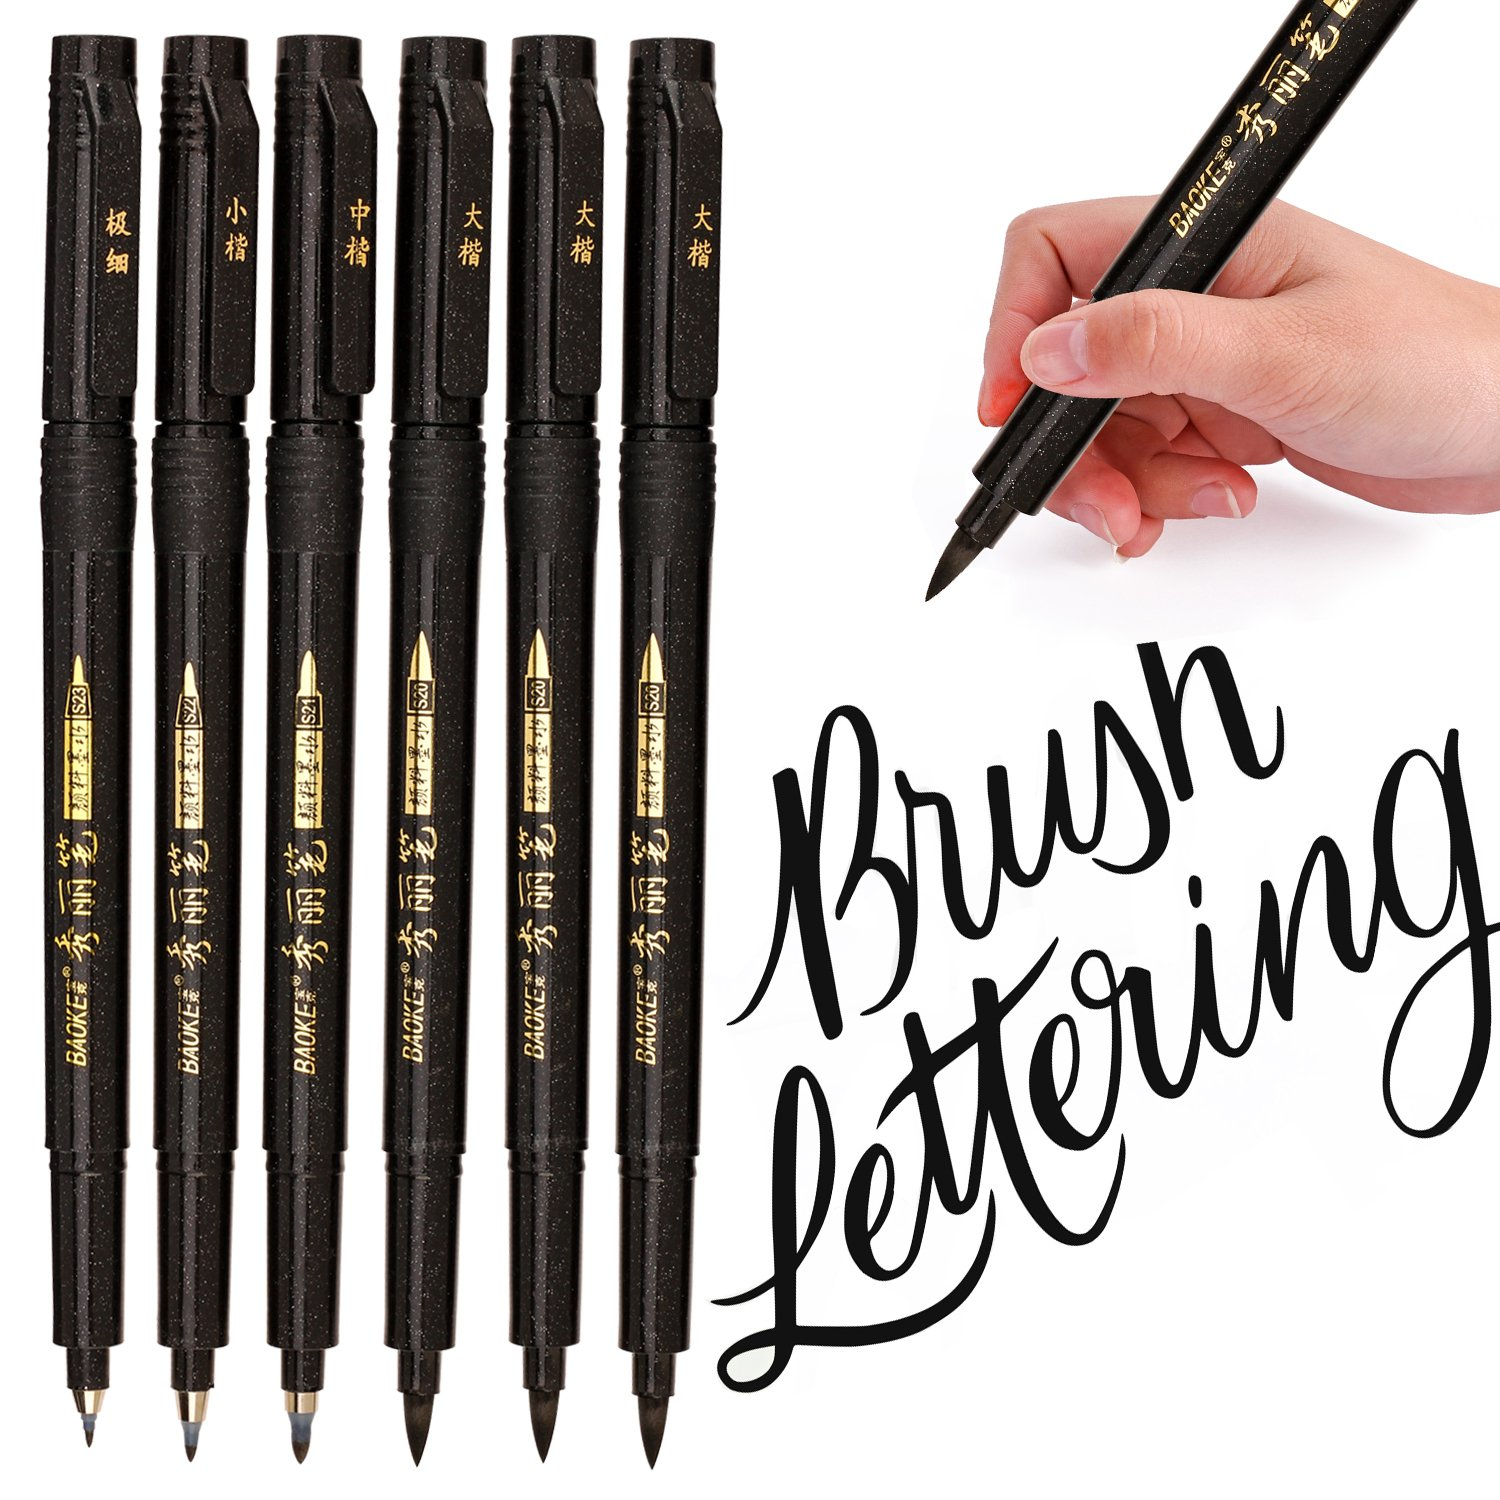 Lettering Pens, Refill Brush Calligraphy Markers Set - 4 Size(6 Pack), for Beginners Writing, Art Drawings, Water Color Illustrations, Journaling and More PANGPANG